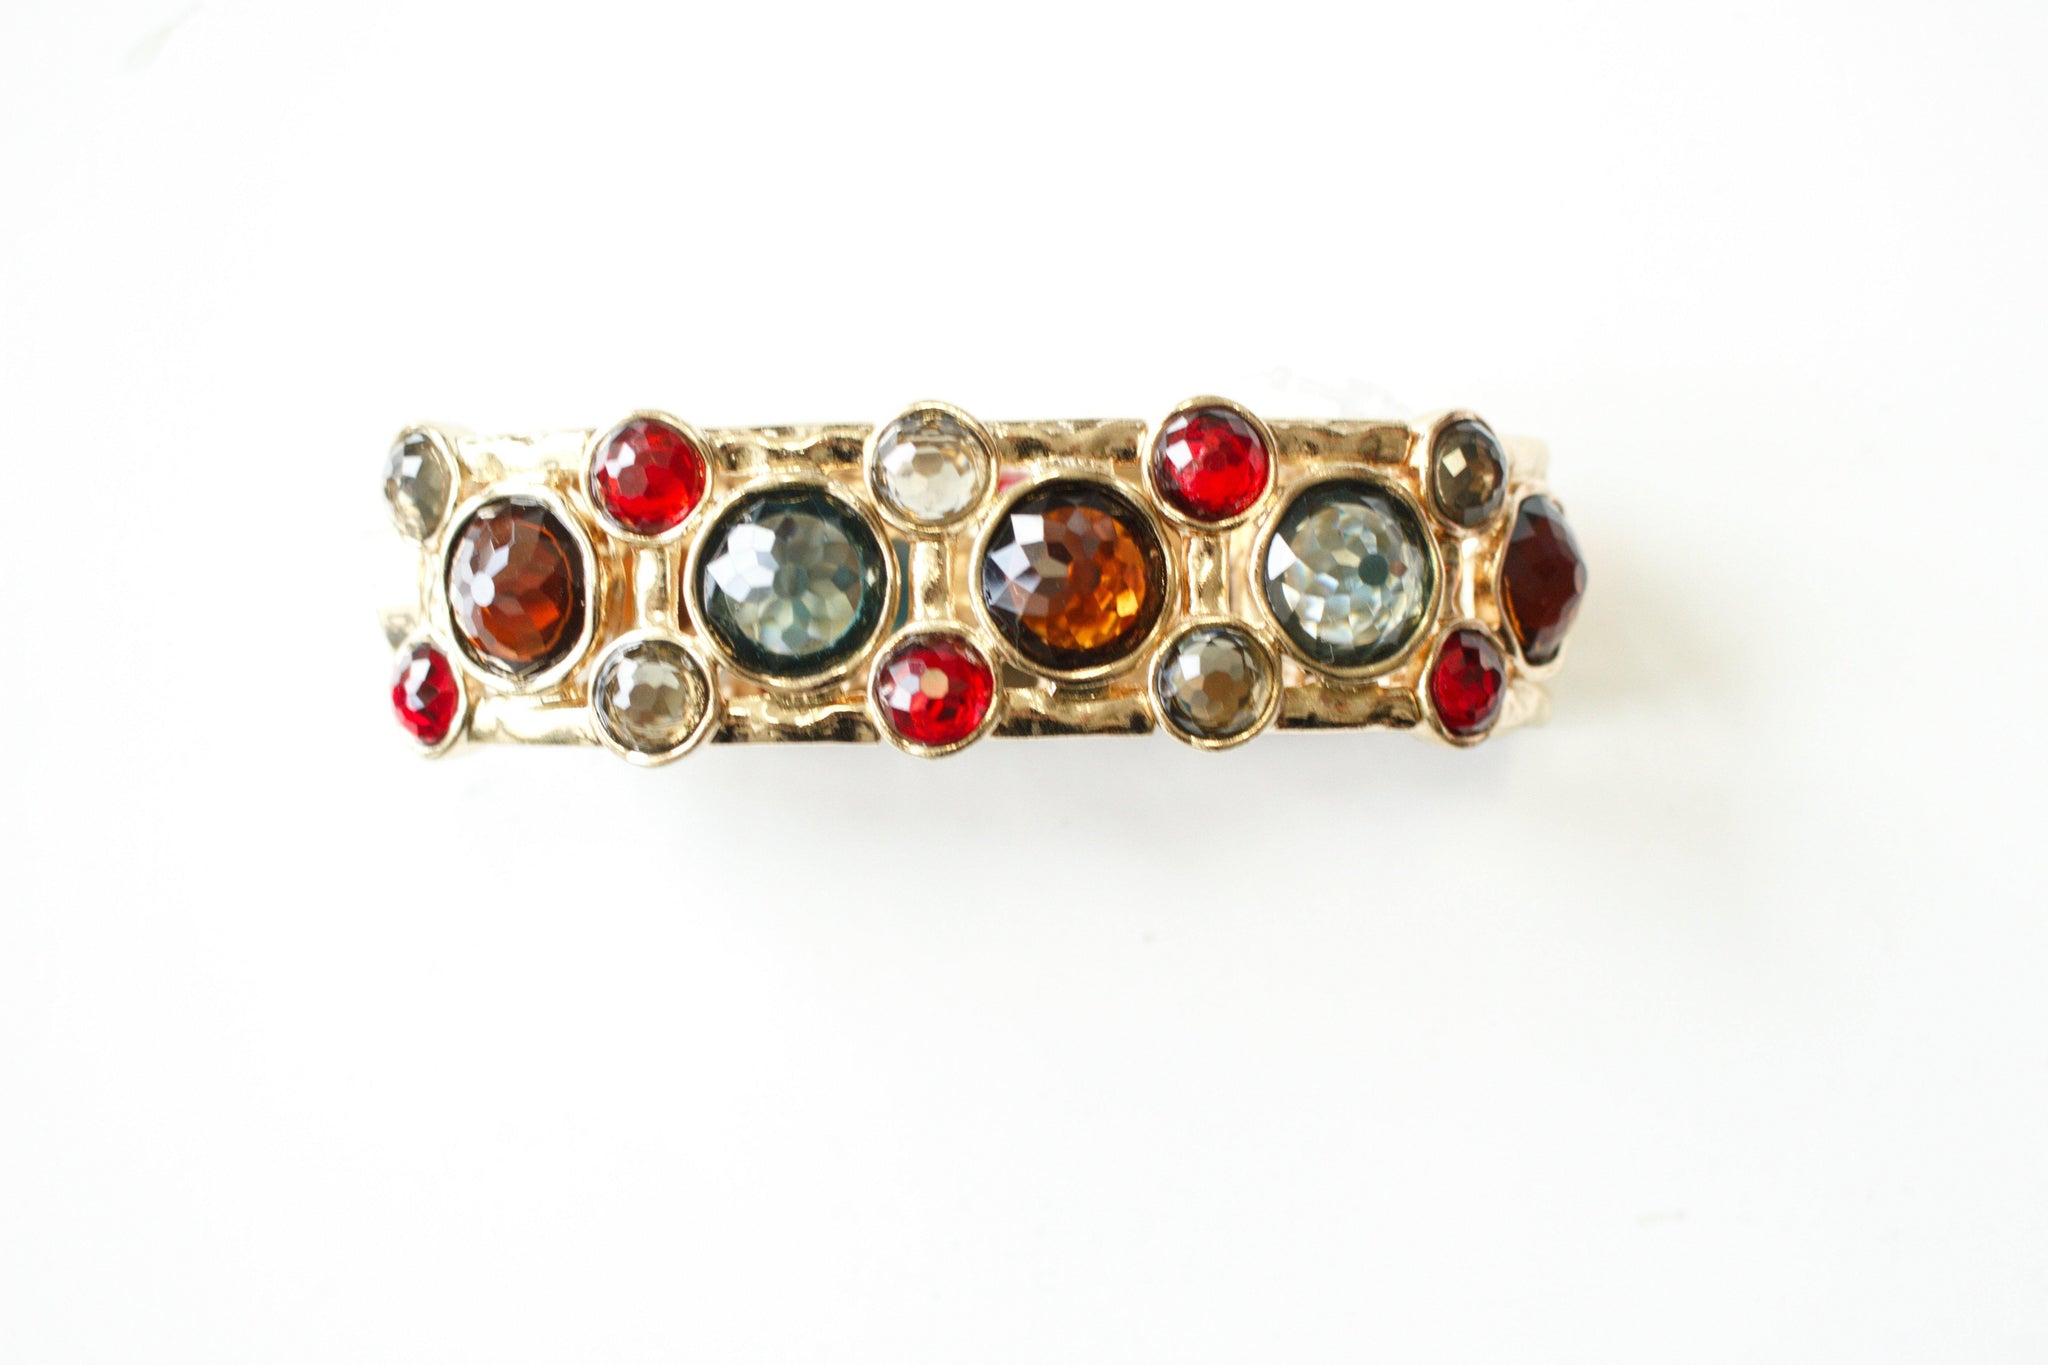 Gem Encrusted Bracelet - Tres Chic Houston